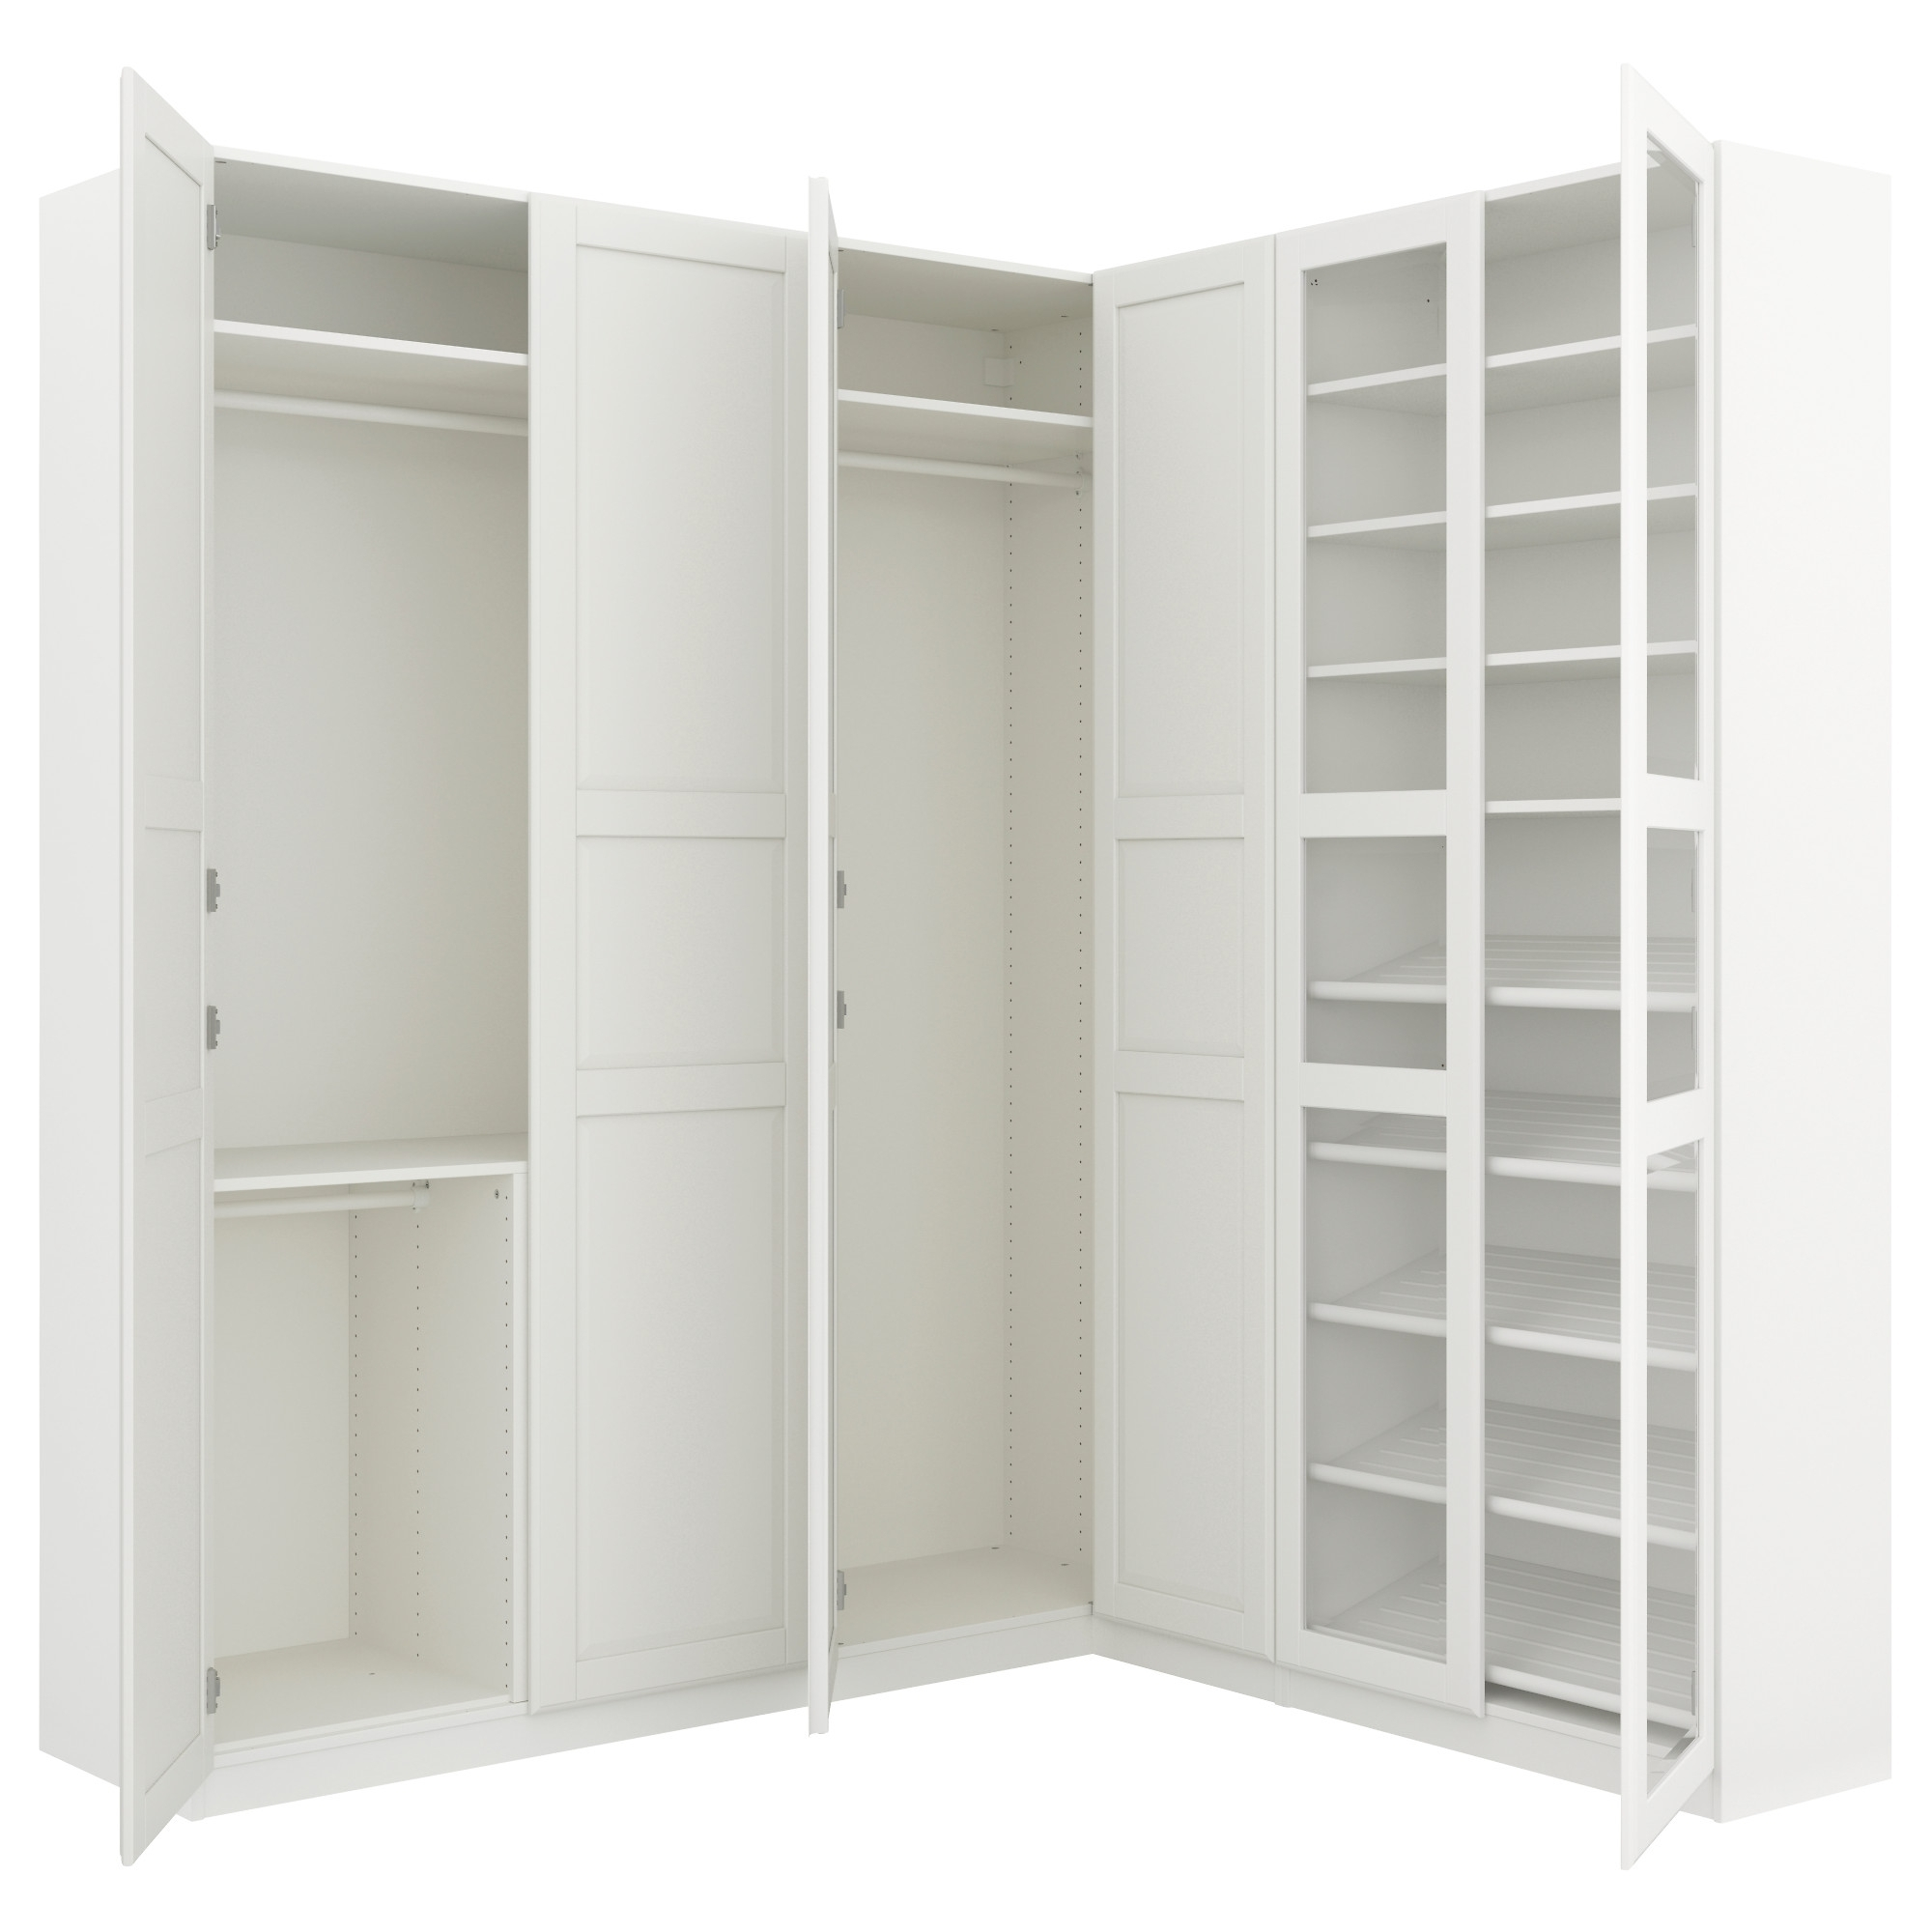 Brilliant White Corner Wardrobes – Buildsimplehome Pertaining To Most Popular White Corner Wardrobes Units (View 2 of 15)